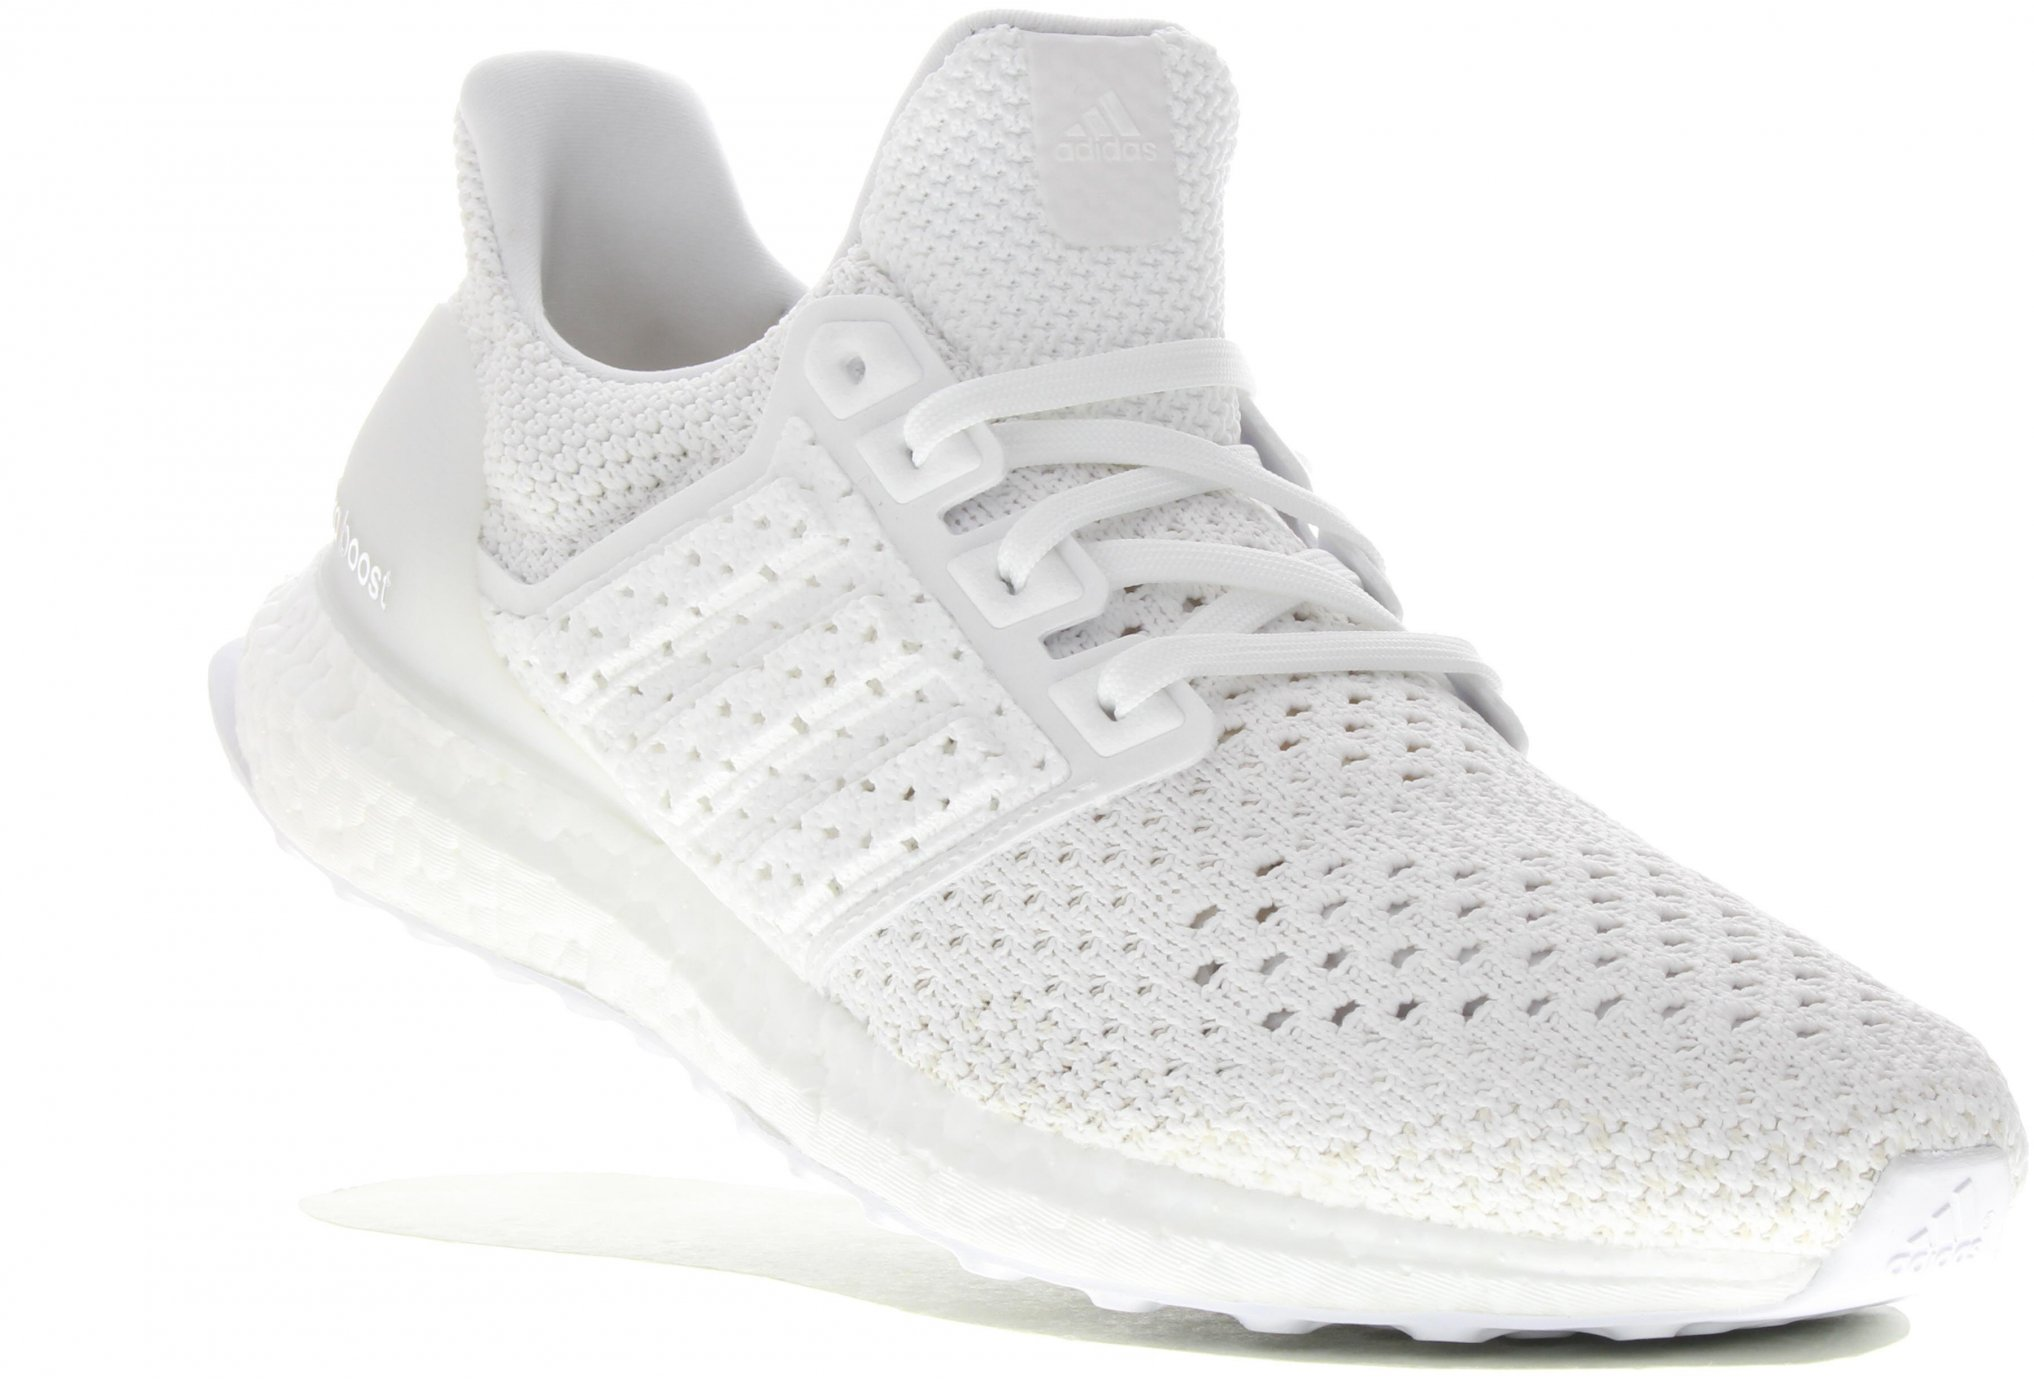 Adidas Ultraboost clima m chaussures homme